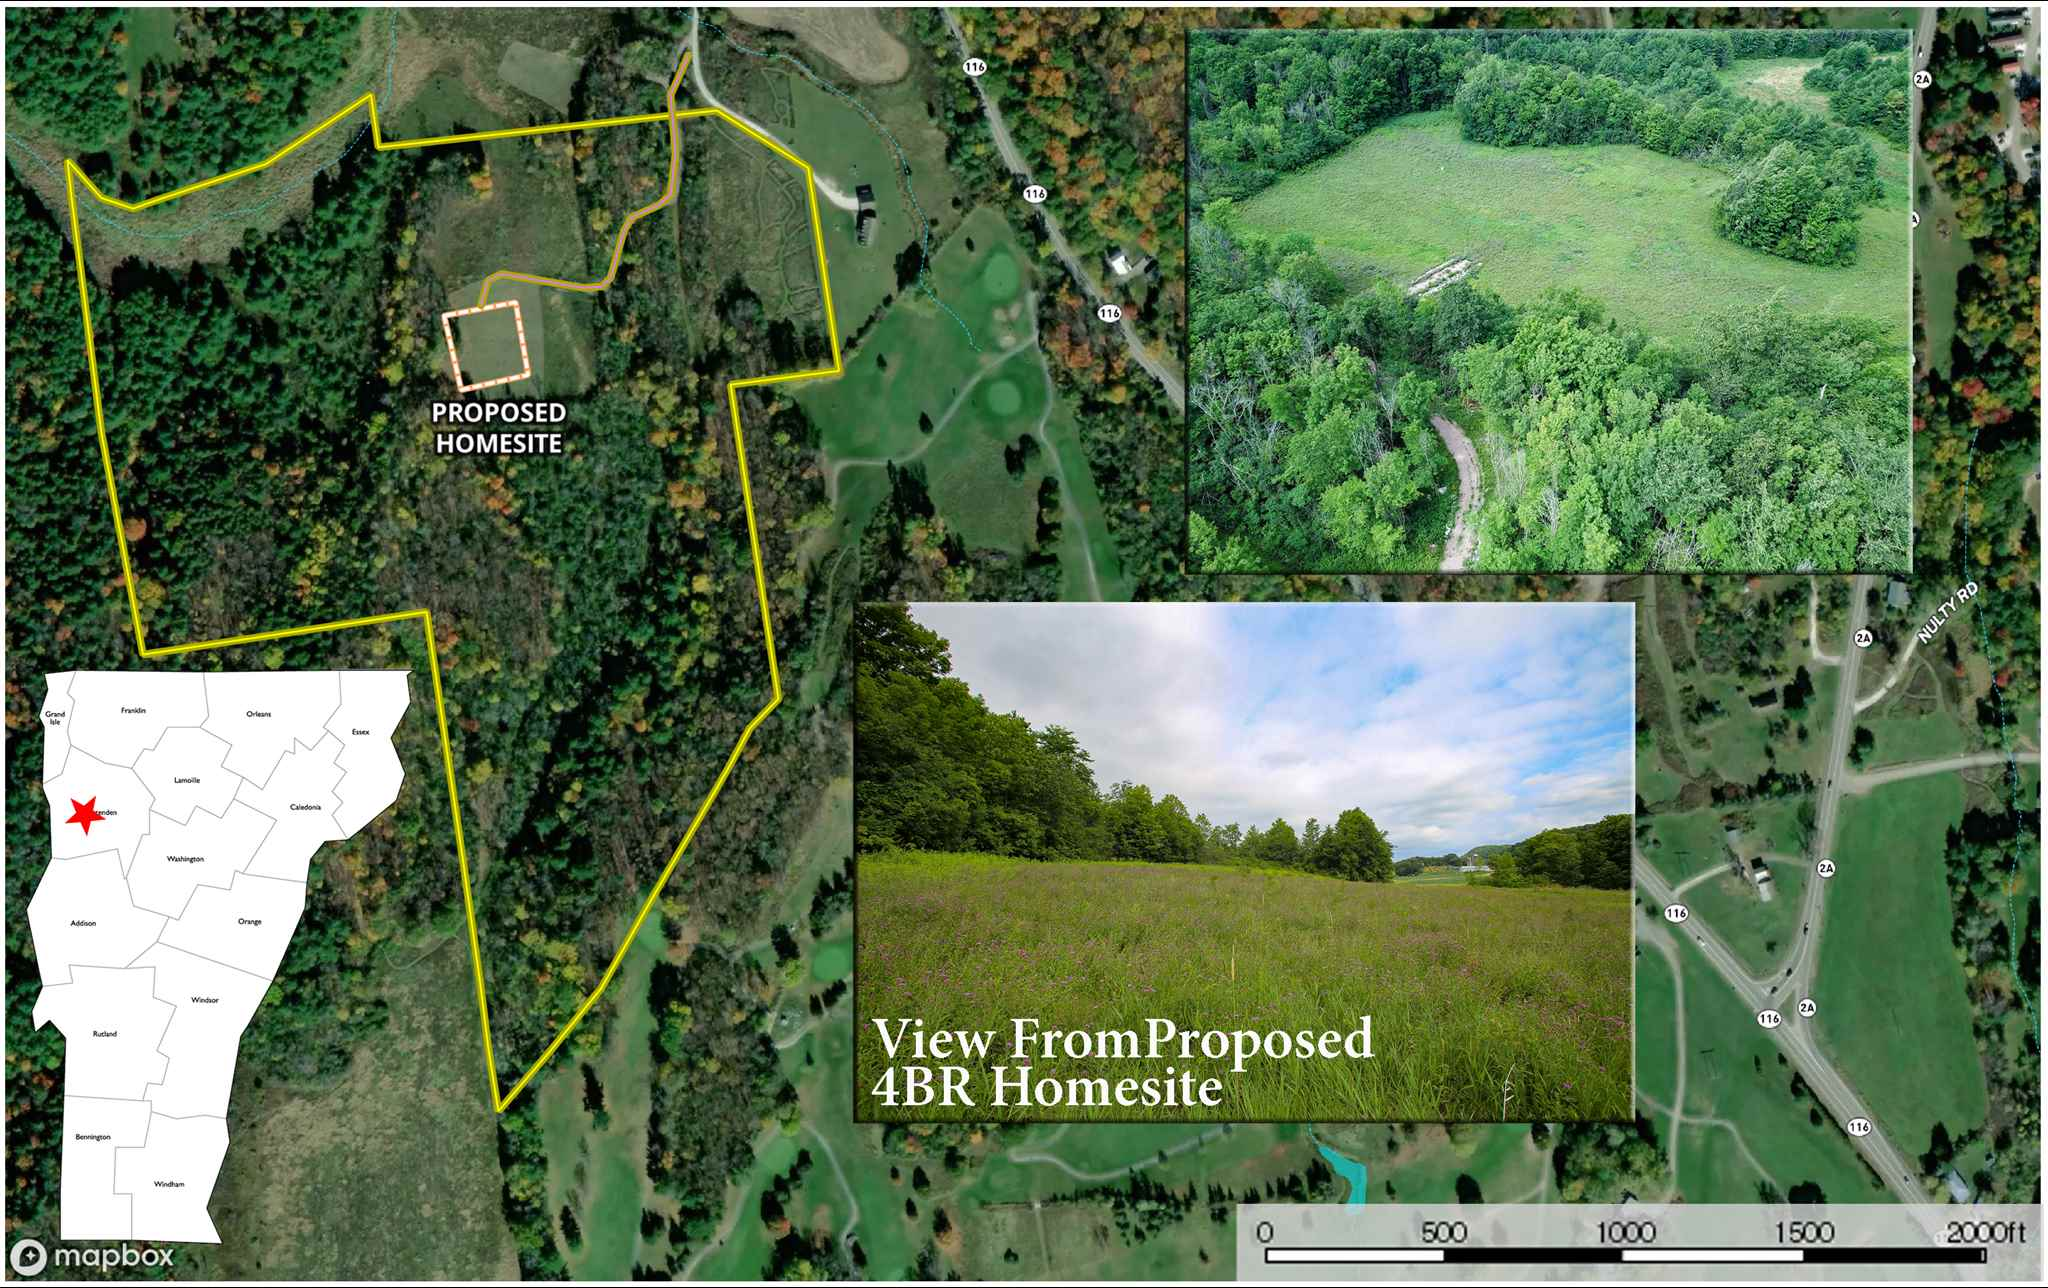 Here's an excellent opportunity to own 38.8 +/- acres with an approved 4-bedroom state wastewater permit in the desirable town of Shelburne, VT! Setback from a privately-maintained 60' right-of-way, the property features an elevated homesite with views of the surrounding terrain including wood lines & a distant working farm. Approximately 5 acres of the land is open fields & 33 acres are private woodland for your personal enjoyment. The land is a part of a larger parcel that was recently subdivided into six lots & buyers will appreciate the seller's attention to detail in crafting covenants for a well-maintained community. Underground utilities are available along Scout Farm Road with the closest transformer box located nearby the property boundary. High-speed internet, Cable TV & telephone services are available through Consolidated. The land will convey with a shared road maintenance agreement well as a 60' ROW easement. Enjoy easy access to Route 116 with Williston, Hinesburg & St. George all within minutes from the property. Shelburne Pond offers recreational activities of fishing, boating & skating just 2 miles away. The Rocky Ridge Golf Course adjoins the land & VAST trail runs along the westerly border of the property. The land will convey subject to an Open Space Agreement with the town of Shelburne keeping the area from over development & rural in nature. One additional lot consisting of 17.9 +/- acres that adjoins this property is available with MLS #4797032.